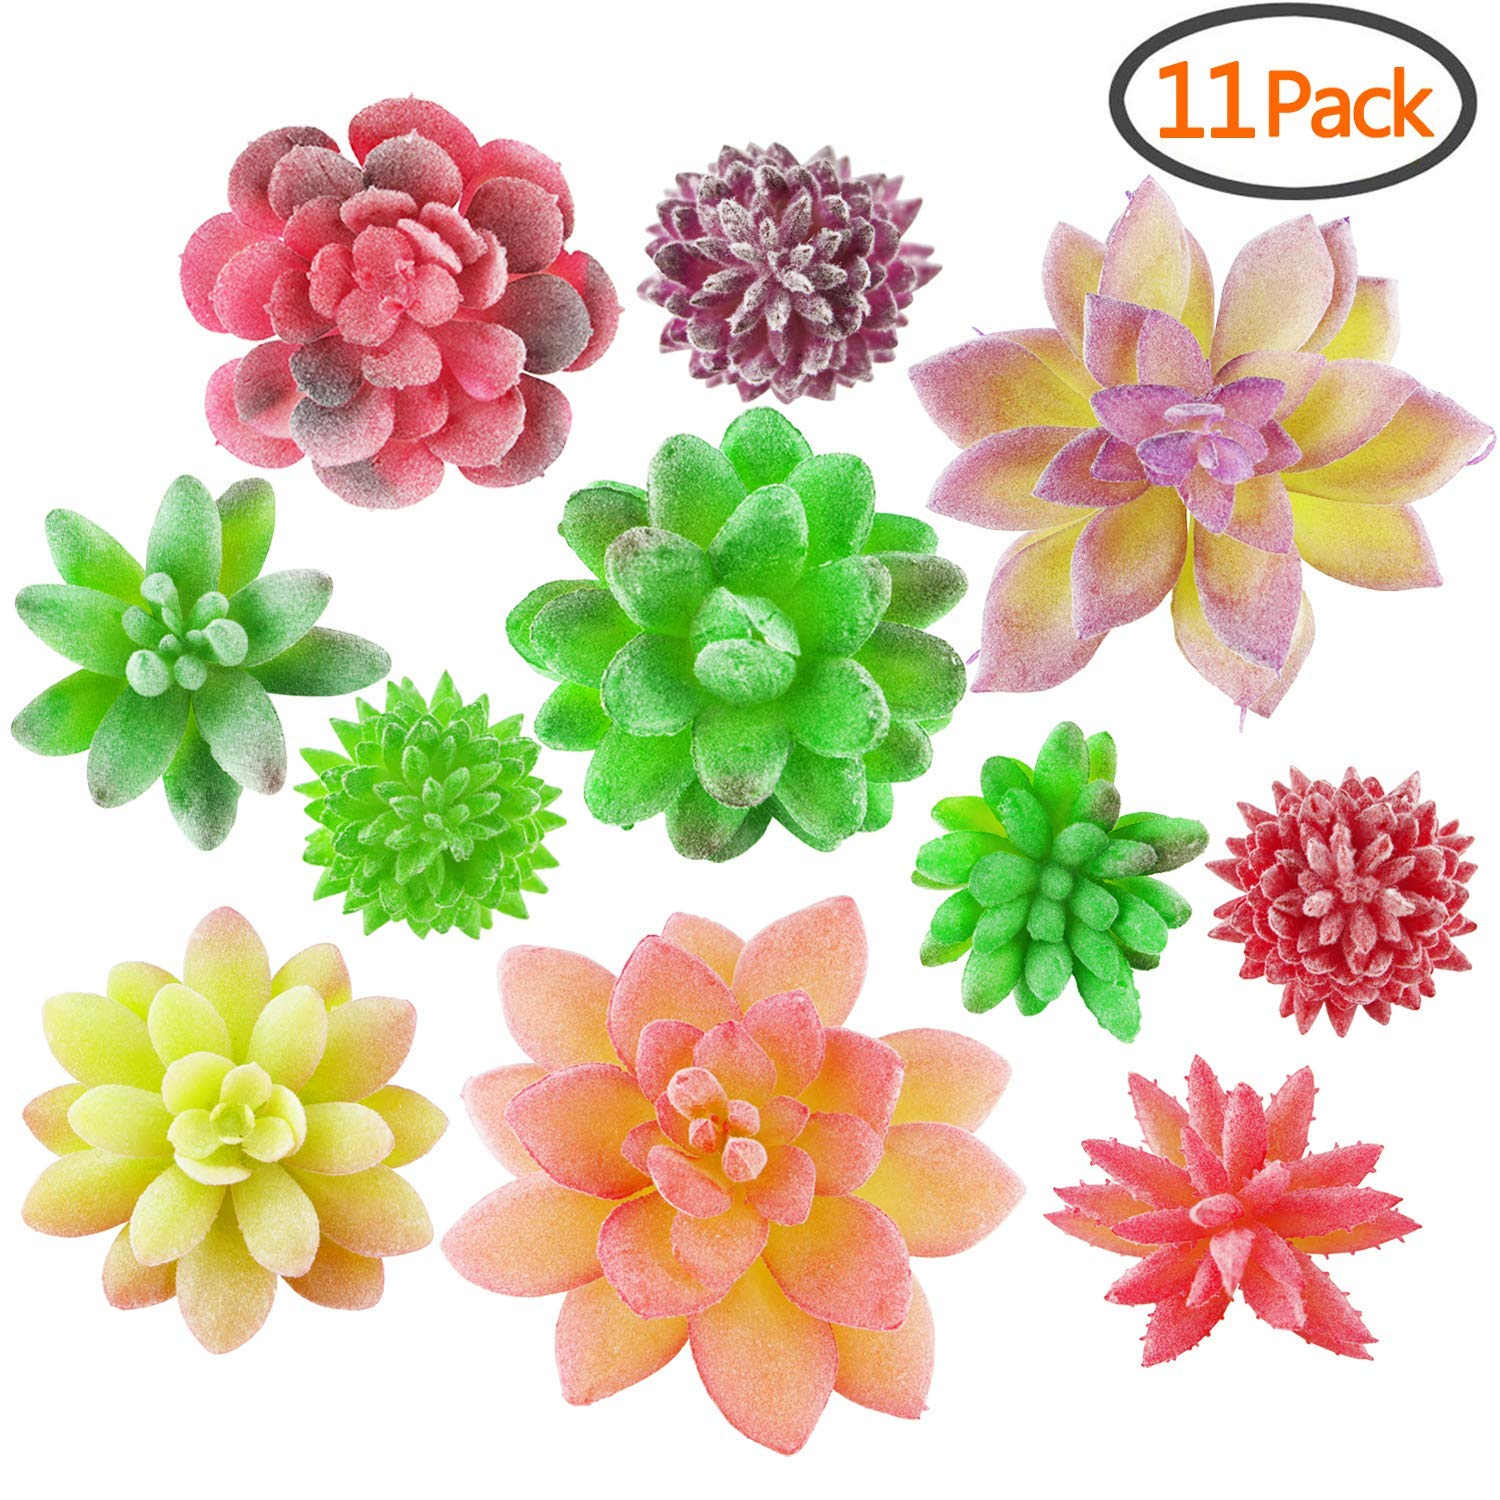 YIPINTANG Artificial Succulent Plants, 11 Pcs Mini Fake Succulent Assorted Picks in Flocked, Faux Succulents Unpotted Home Decor Indoor Wall Garden DIY Photography (11 Pcs)